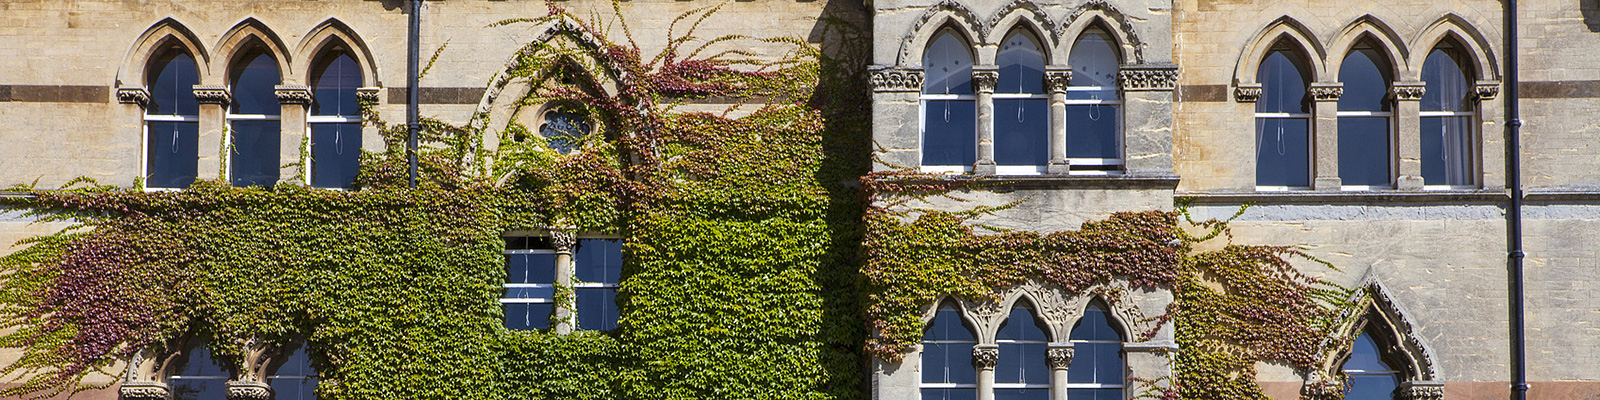 The Meadow Building at Christ Church College in Oxford